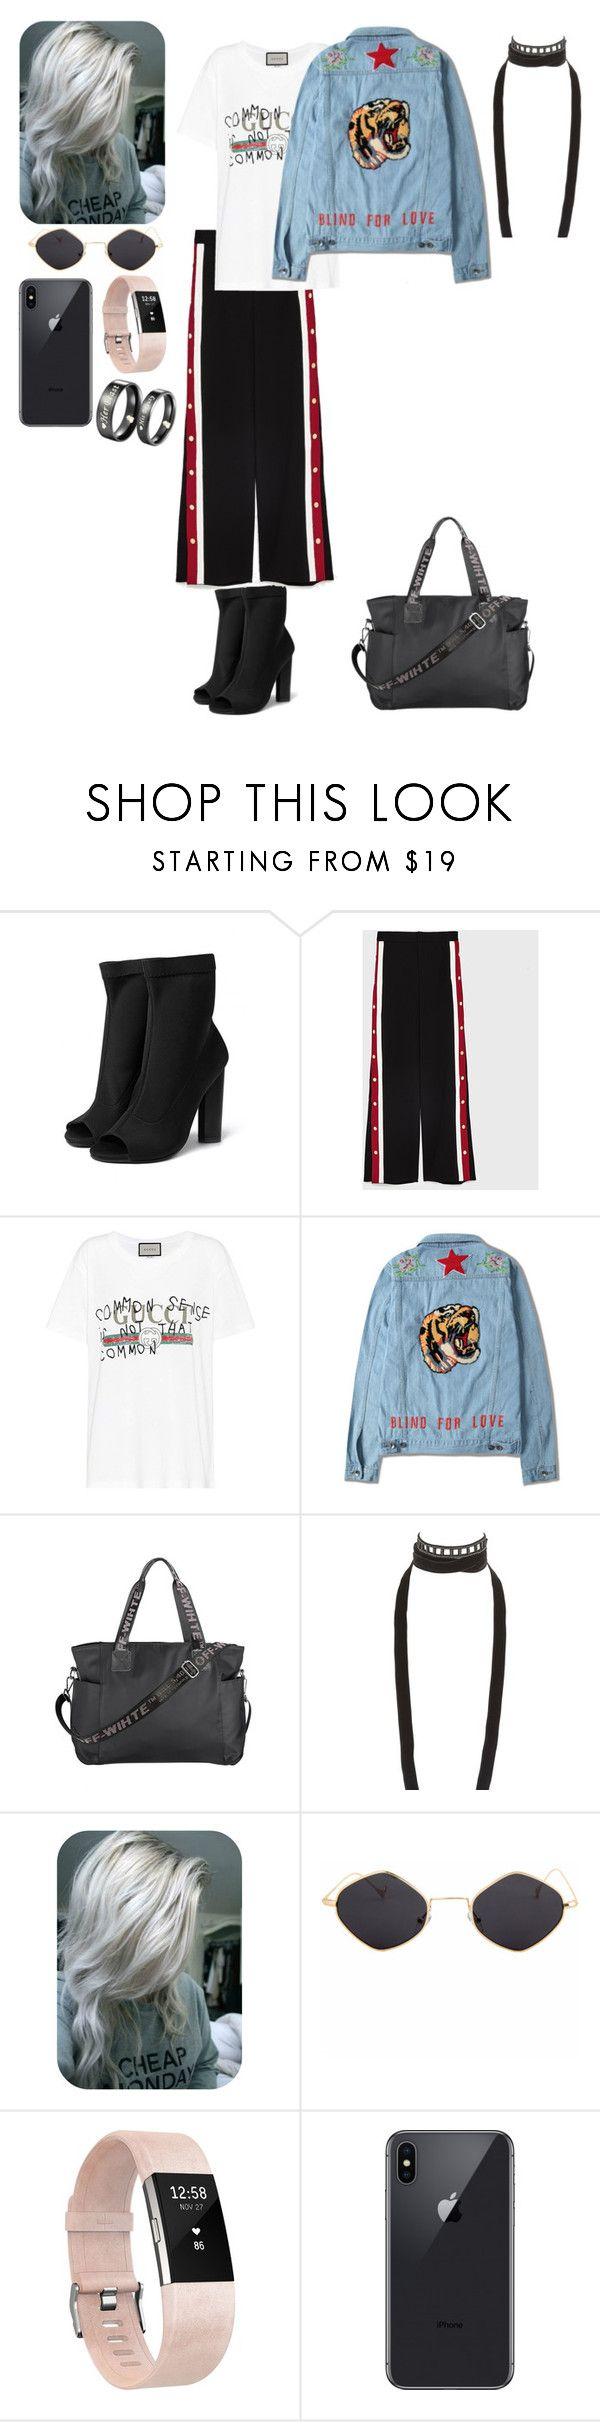 """""""It's a promise ring for him and I"""" by wallflowerofdesires14 ❤ liked on Polyvore featuring Gucci, Ann Demeulemeester and Fitbit"""